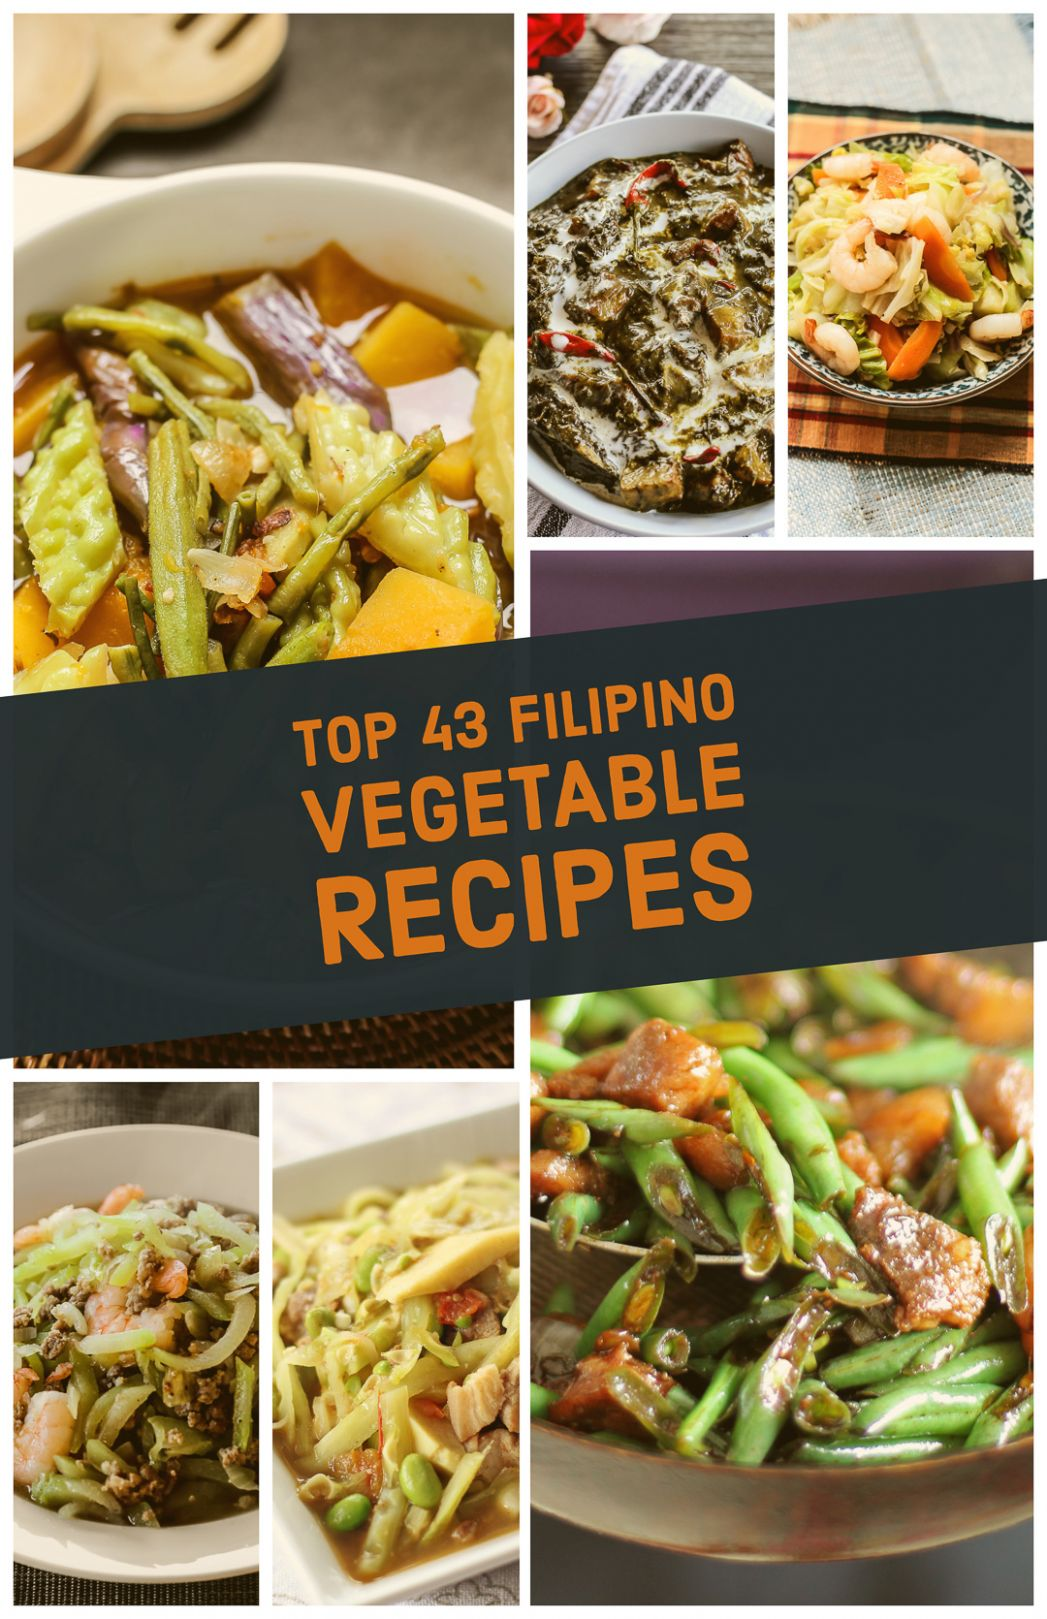 Top 8 Filipino Vegetable Recipes - Ang Sarap - Vegetable Recipes List